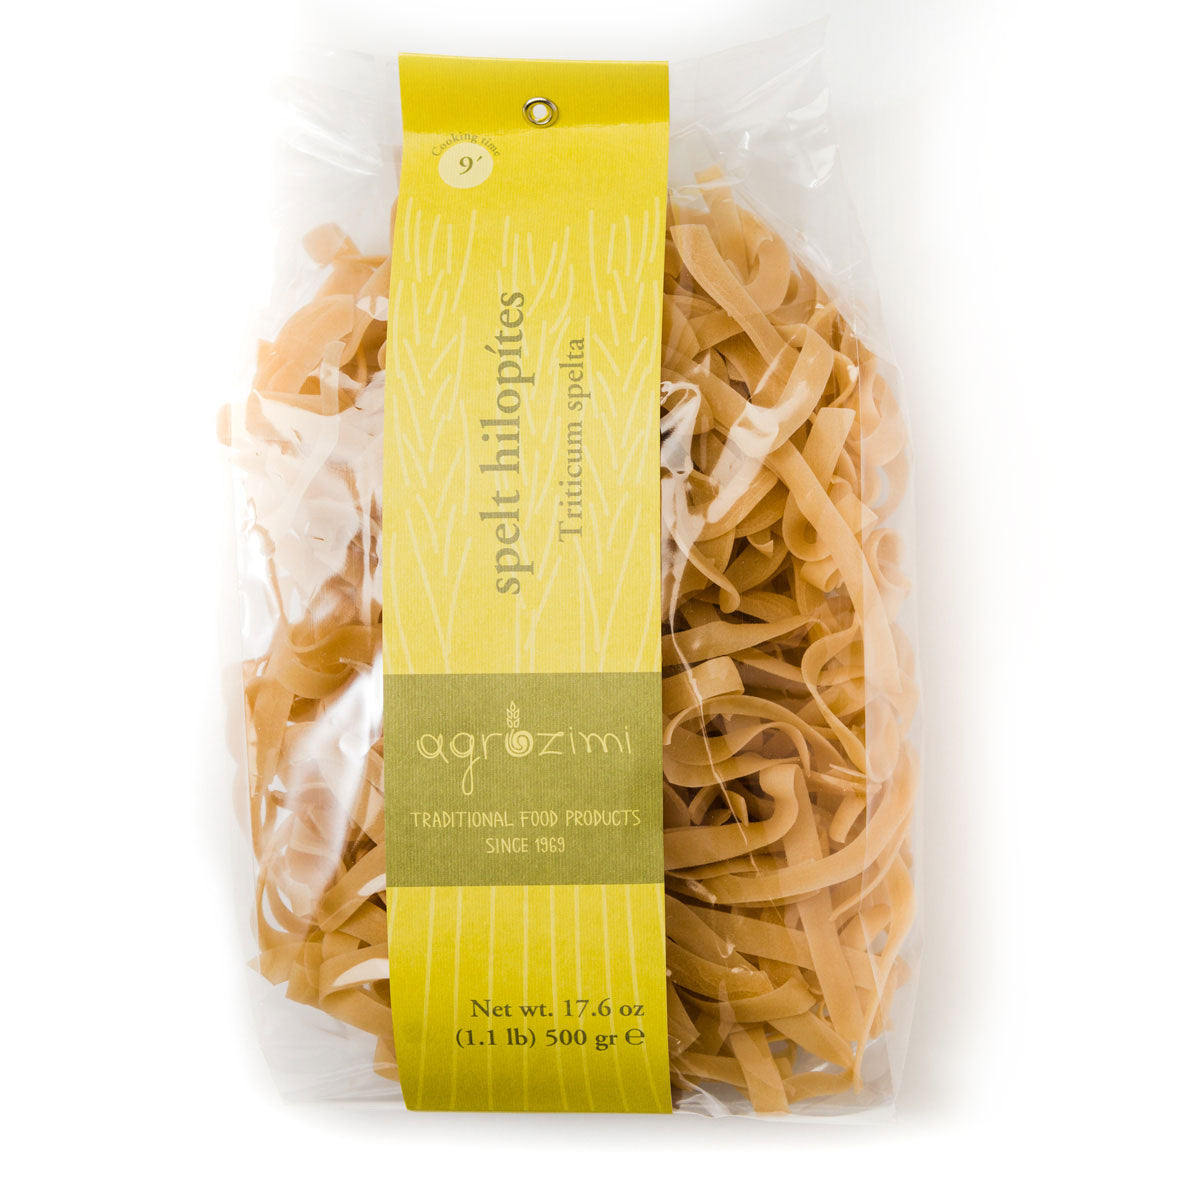 Agrozimi Traditional Spelt Hilopites - All-natural Artisanal Pasta